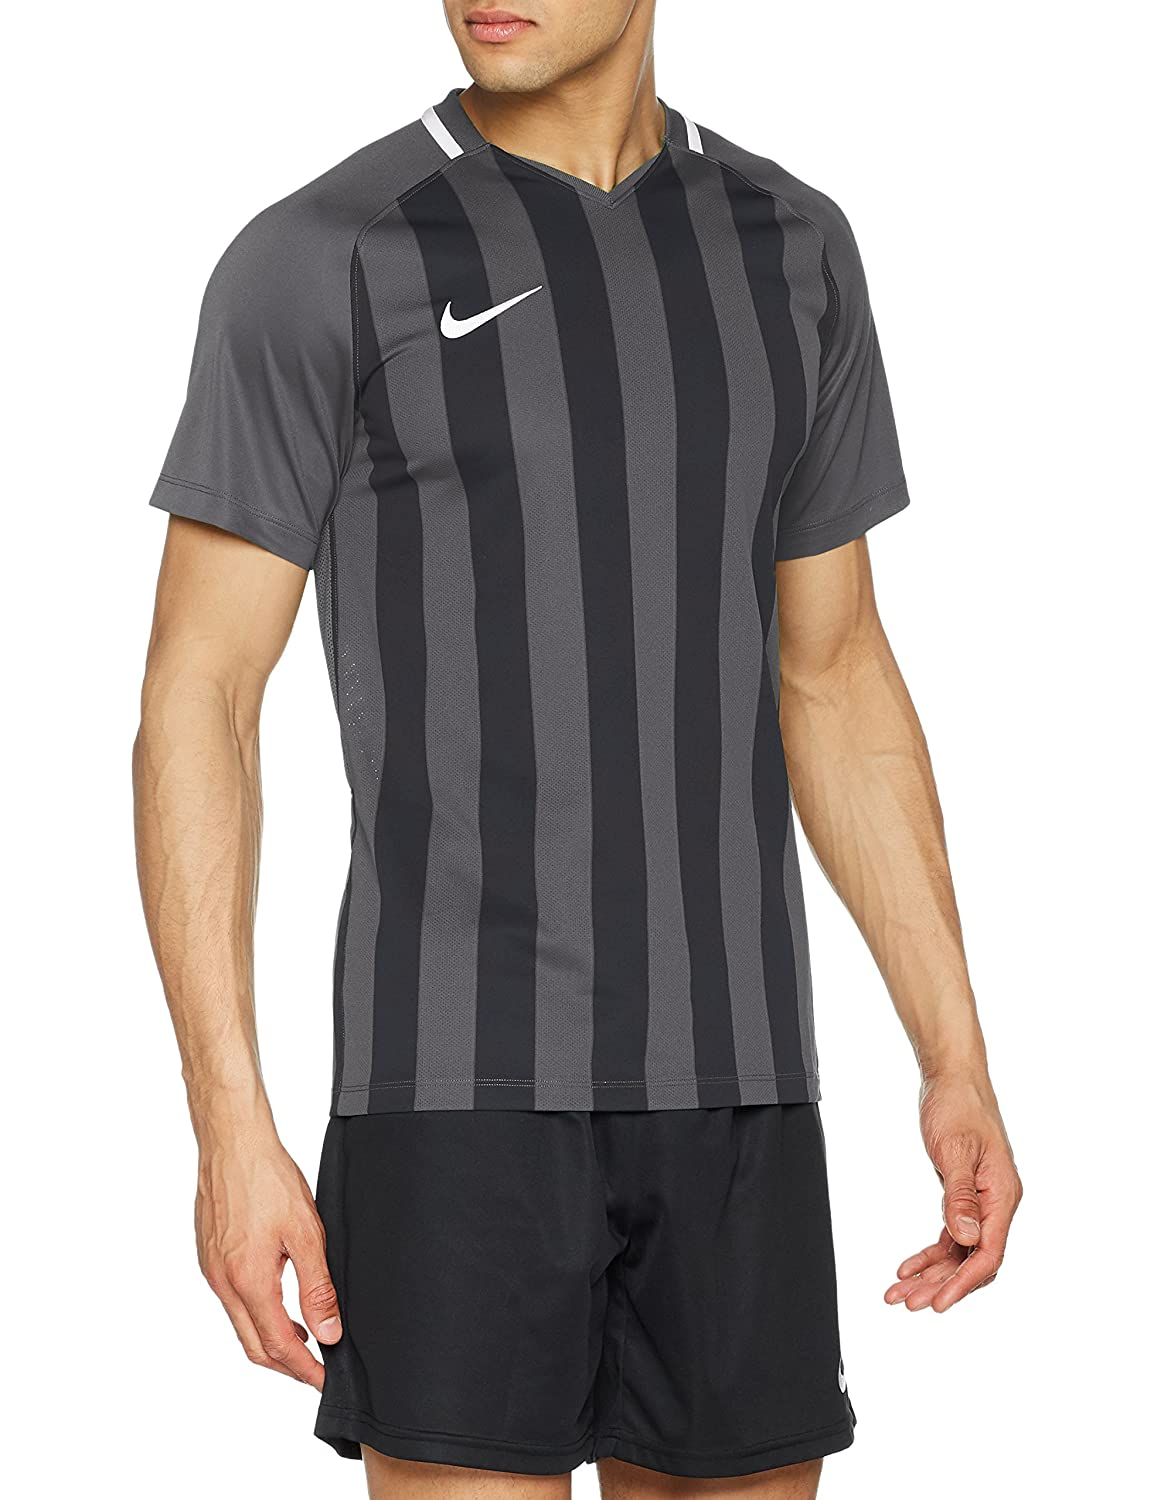 Nike Herren Striped Division Iii Football Jersey T-Shirt